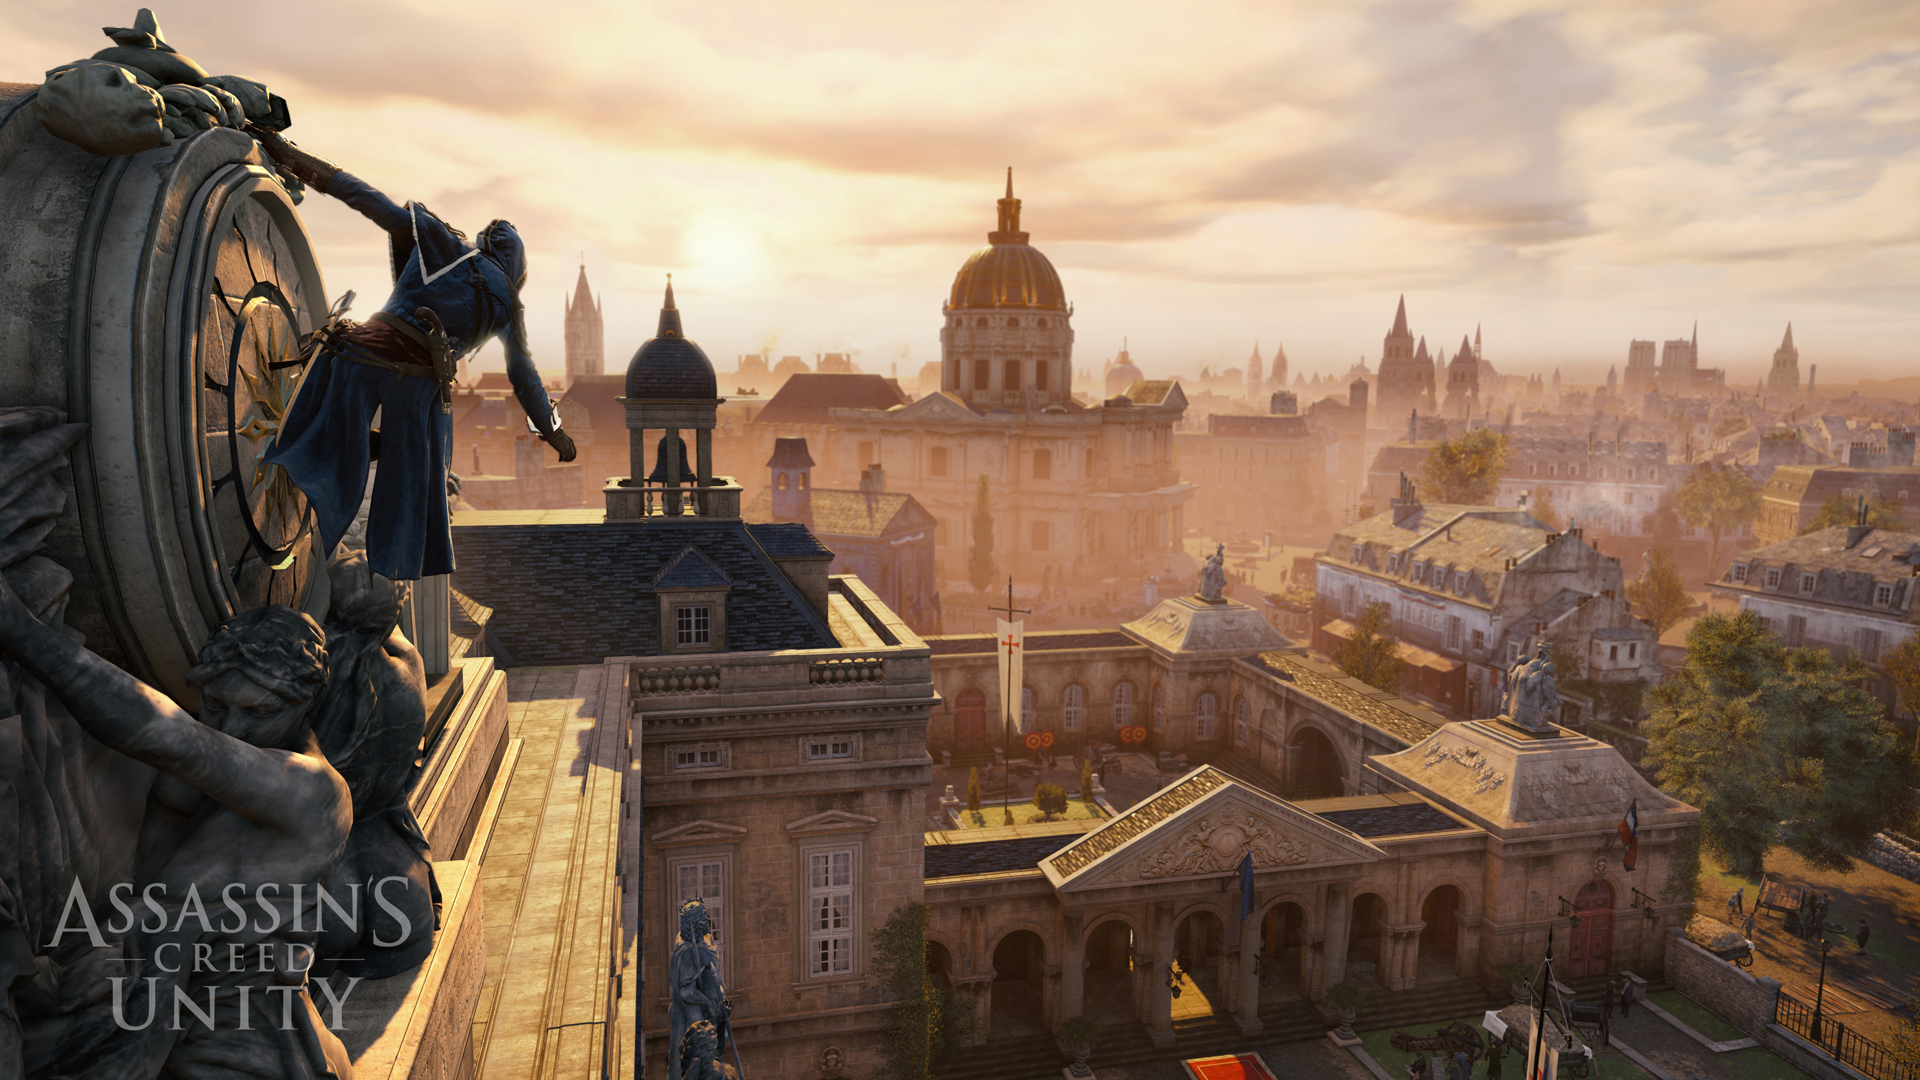 Report: Assassin's Creed Unity to run in 900p at 30 fps on PS4 and Xbox One (update)